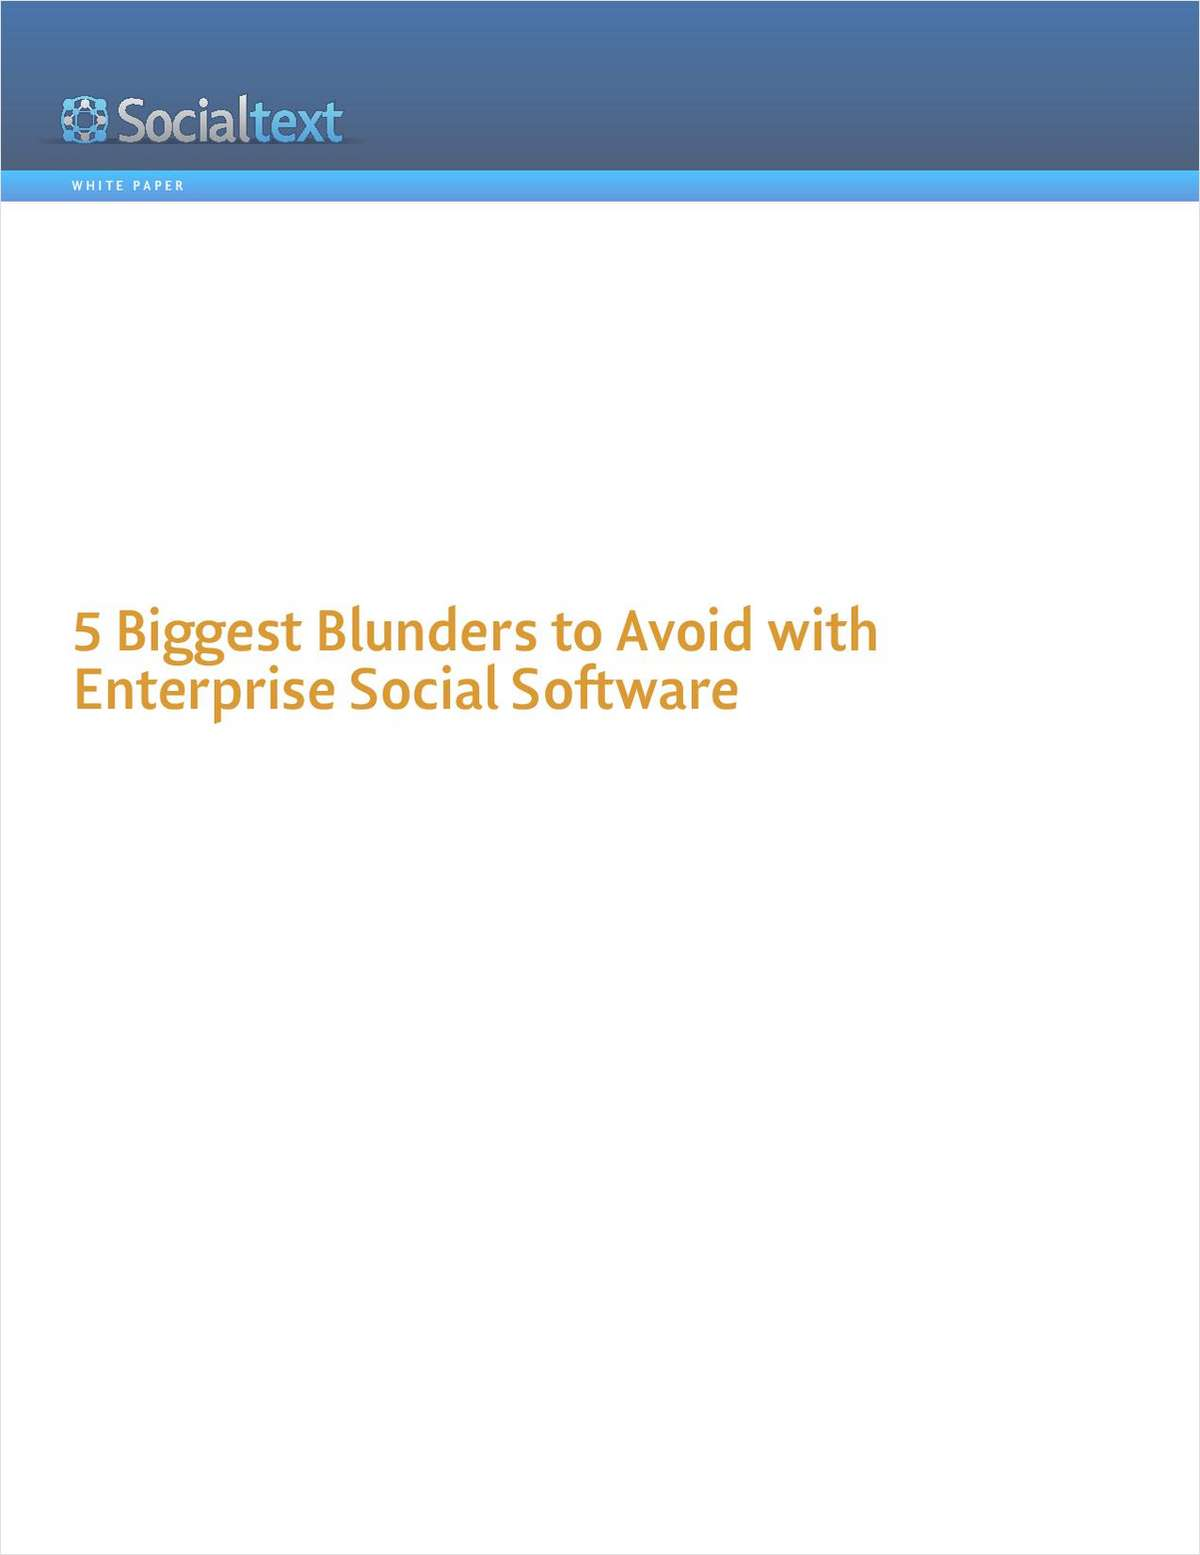 5 Biggest Blunders to Avoid with Enterprise Social Software